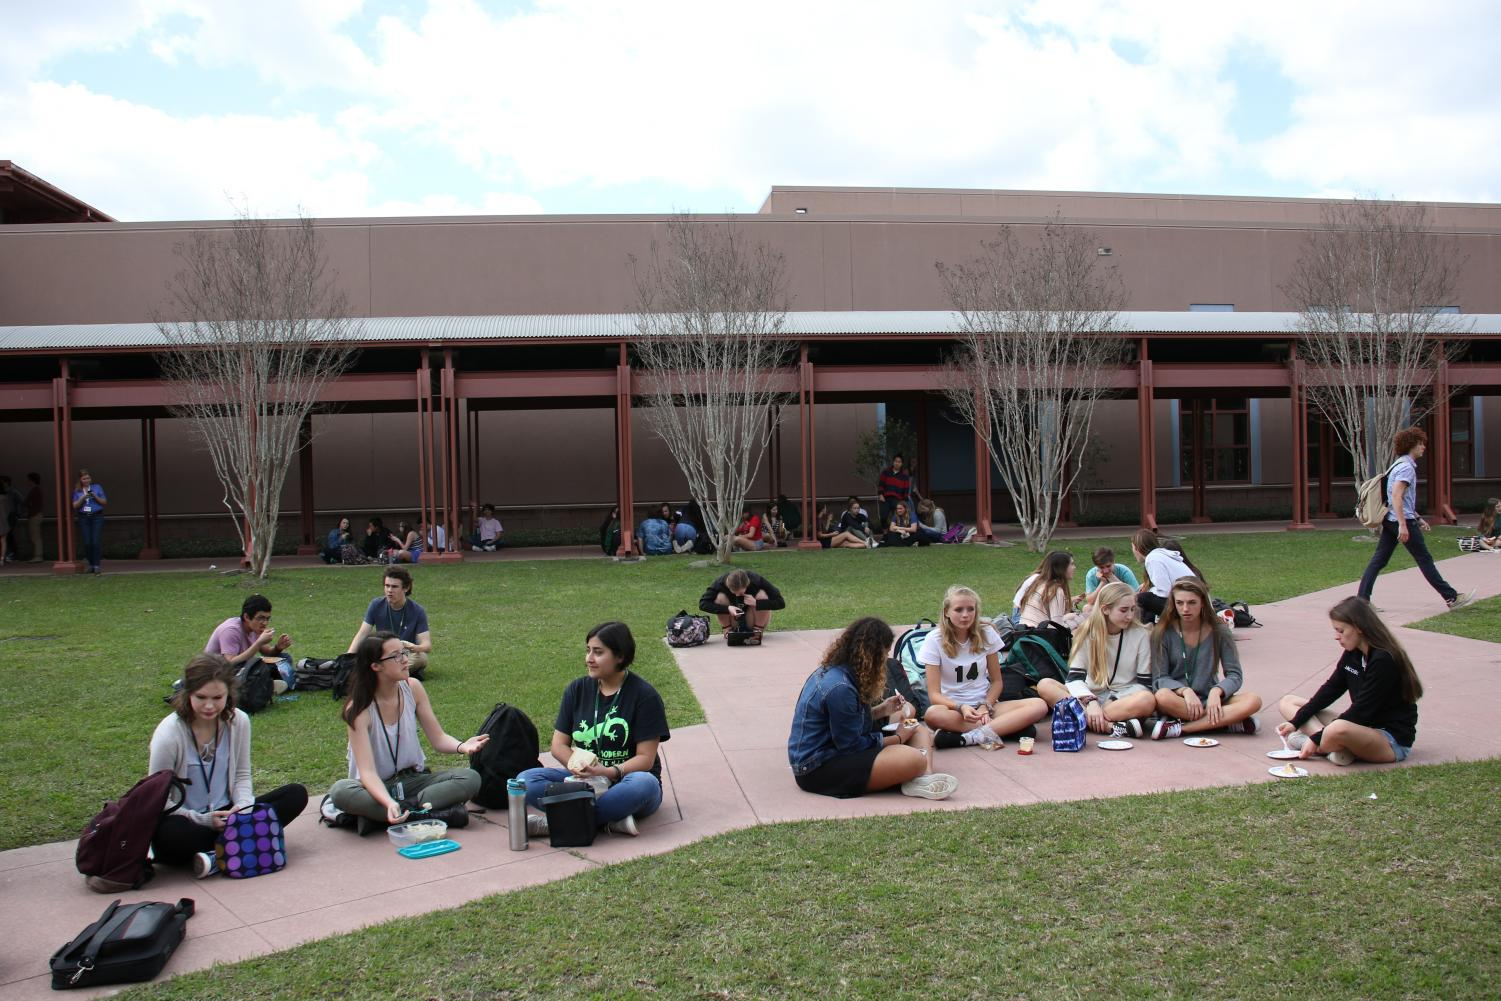 Students+gathered+in+the+courtyard+for+the+pi+day+performances.+